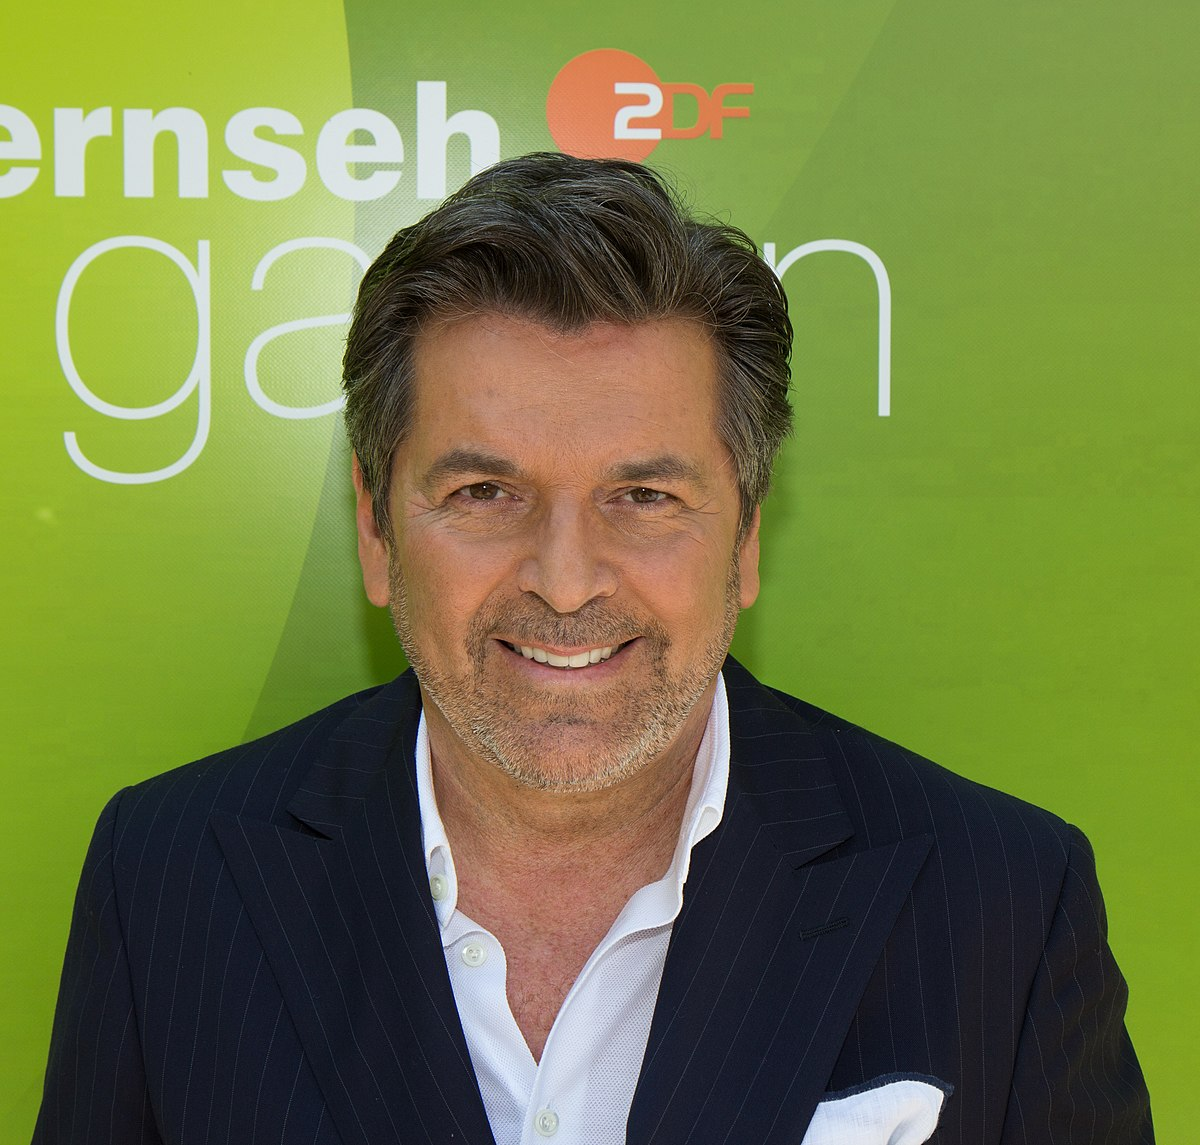 thomas anders wikipedia